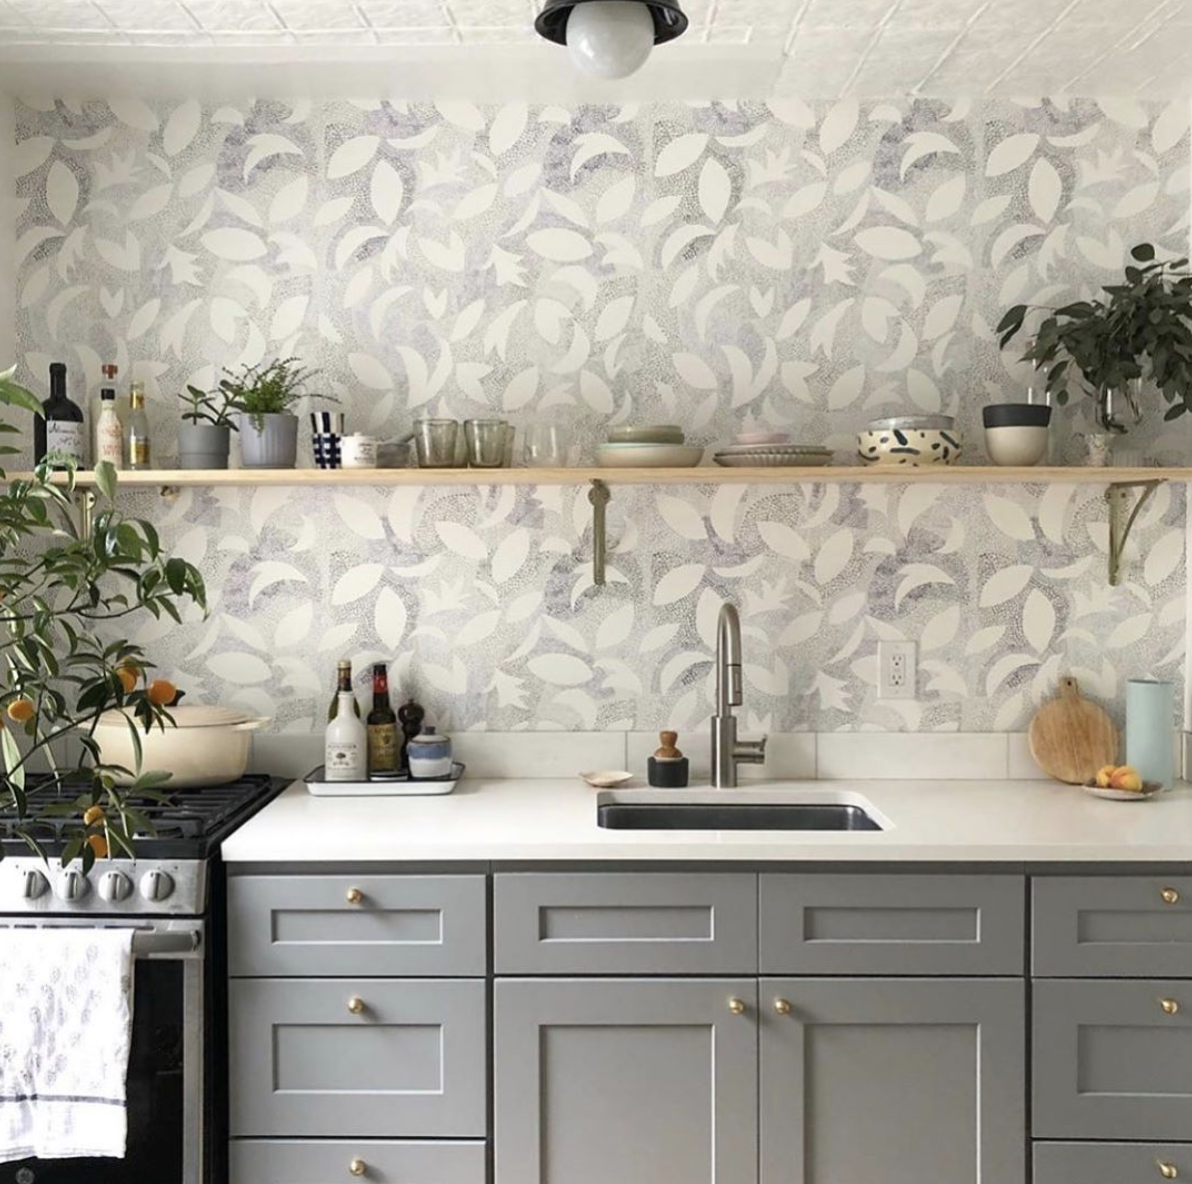 Dotted Leaves Wallpaper in Gray Lilac   Wallpaper for kitchen ...